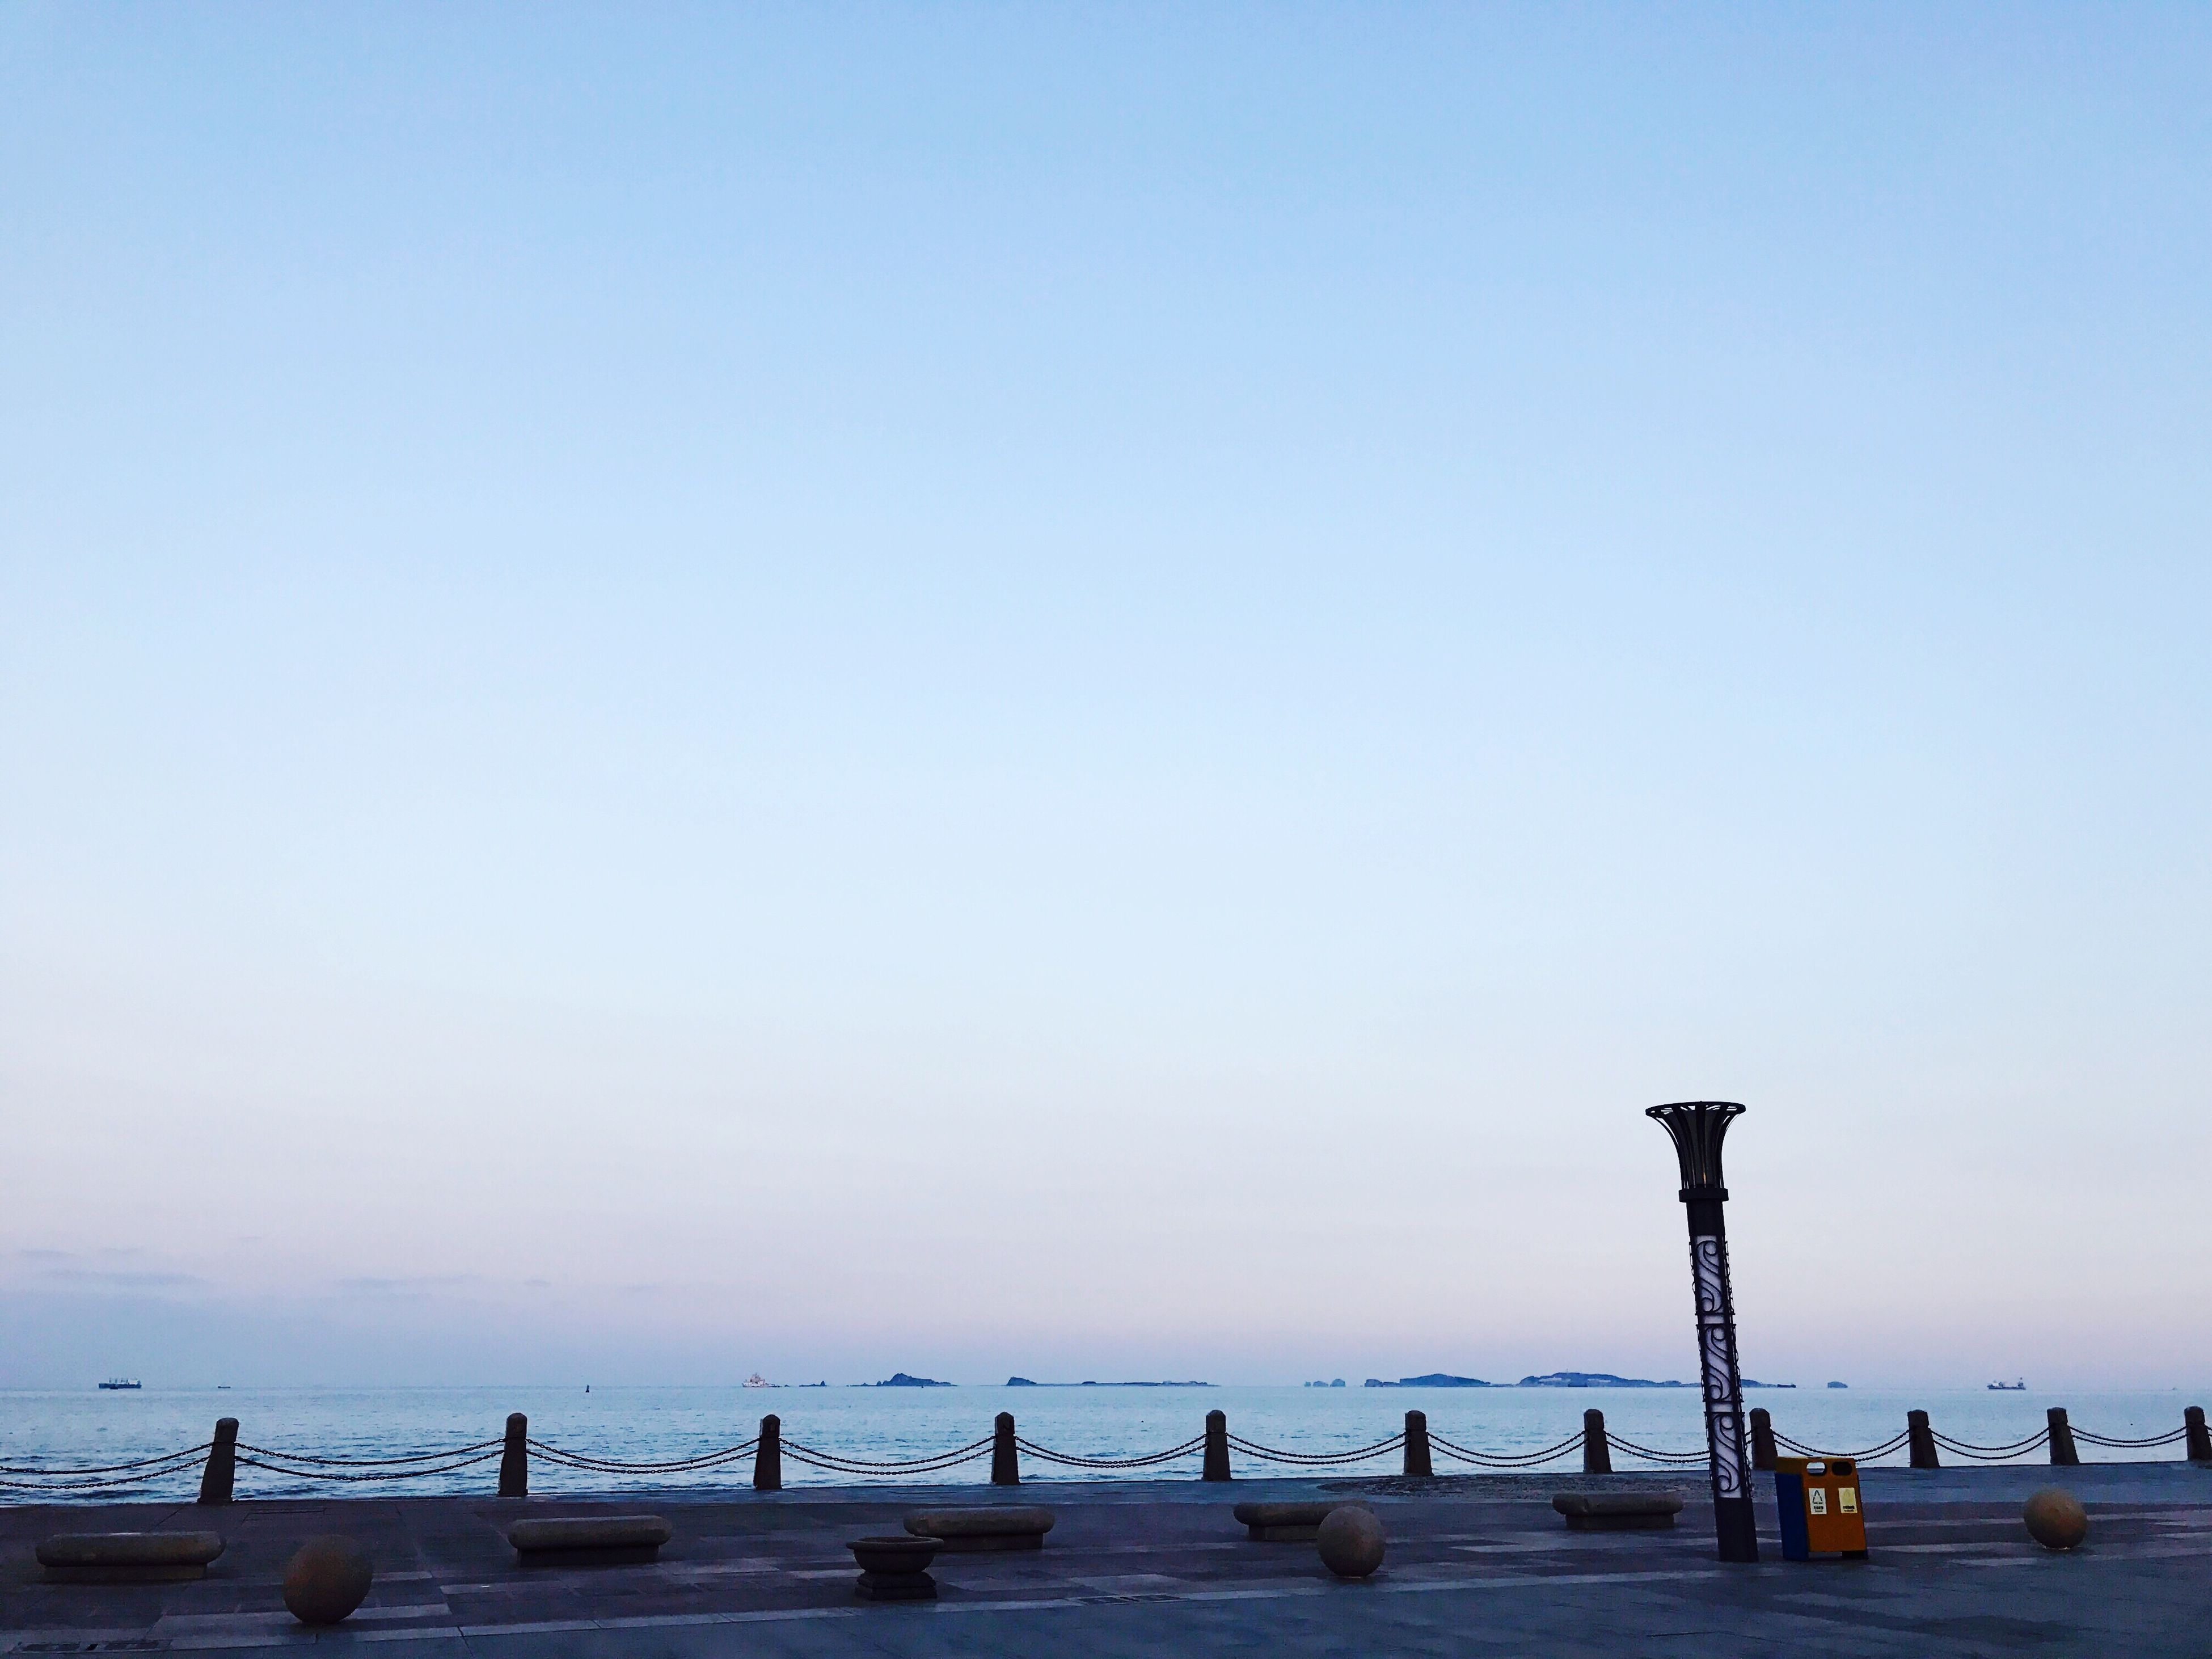 sea, water, nature, sky, outdoors, real people, beauty in nature, scenics, beach, large group of people, horizon over water, day, men, people